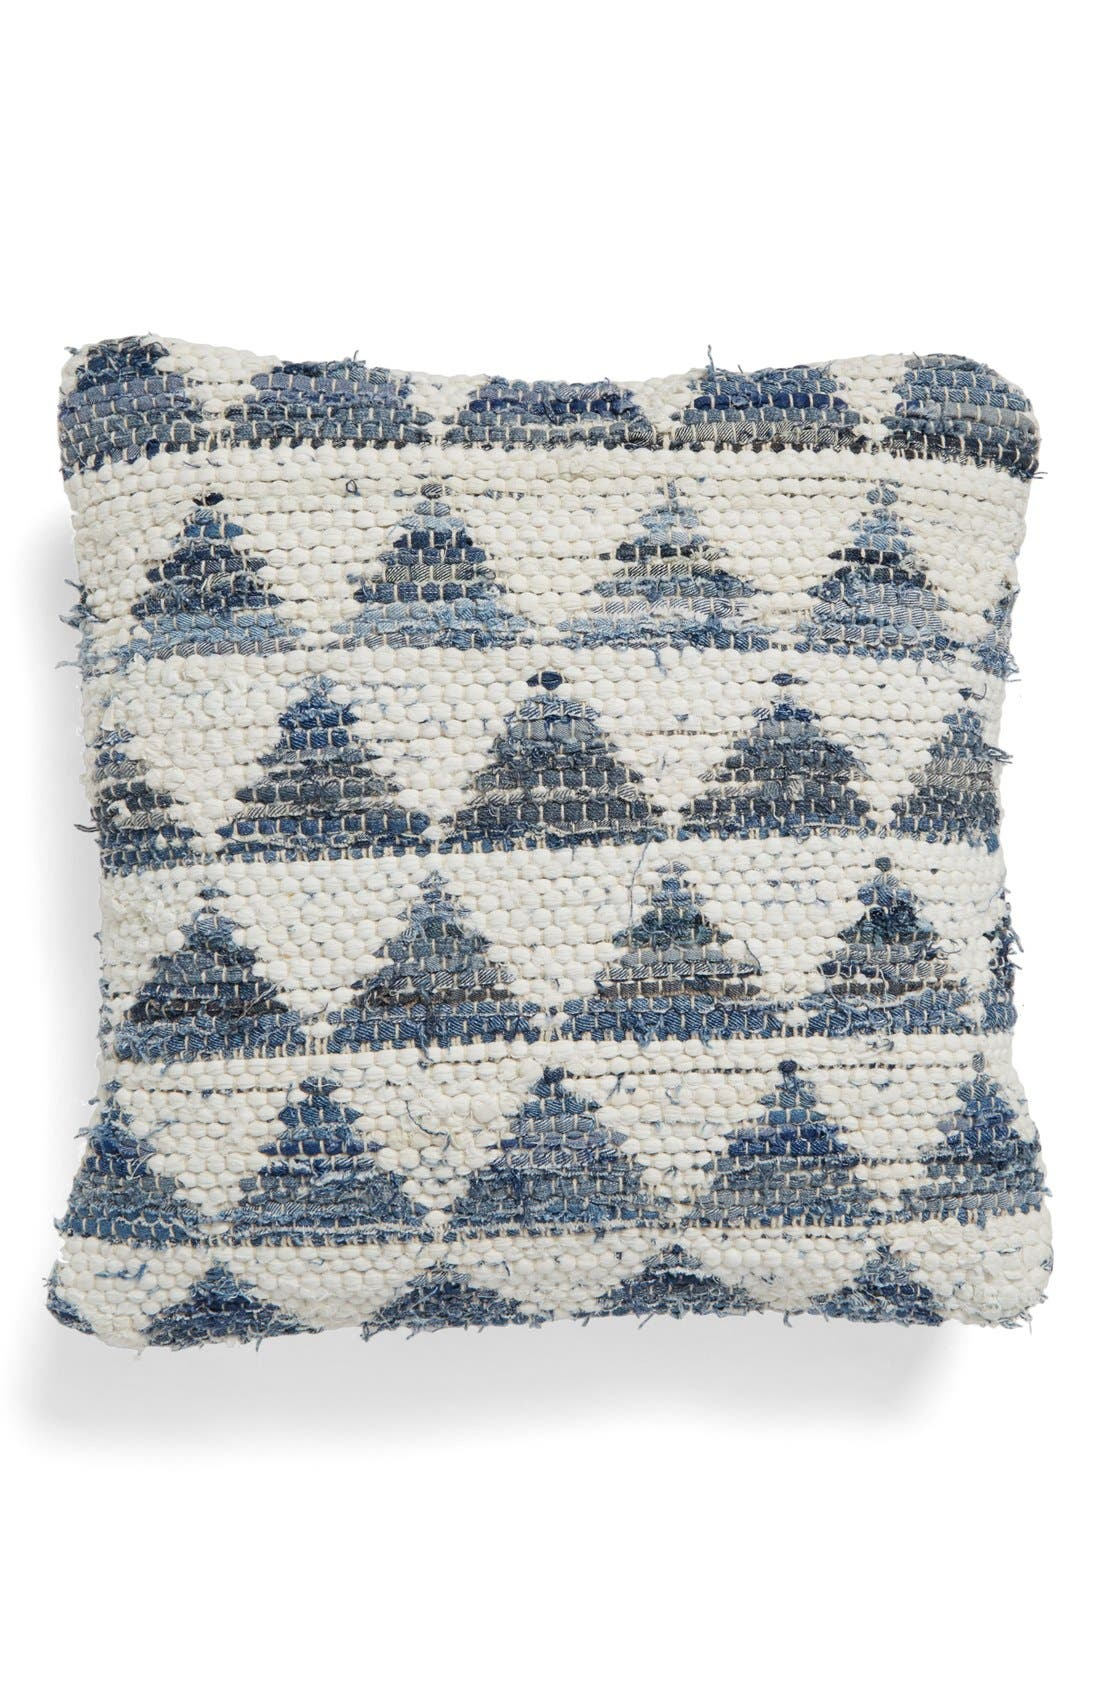 Alternate Image 1 Selected - Brentwood Originals 'Denim Pyramids' Pillow